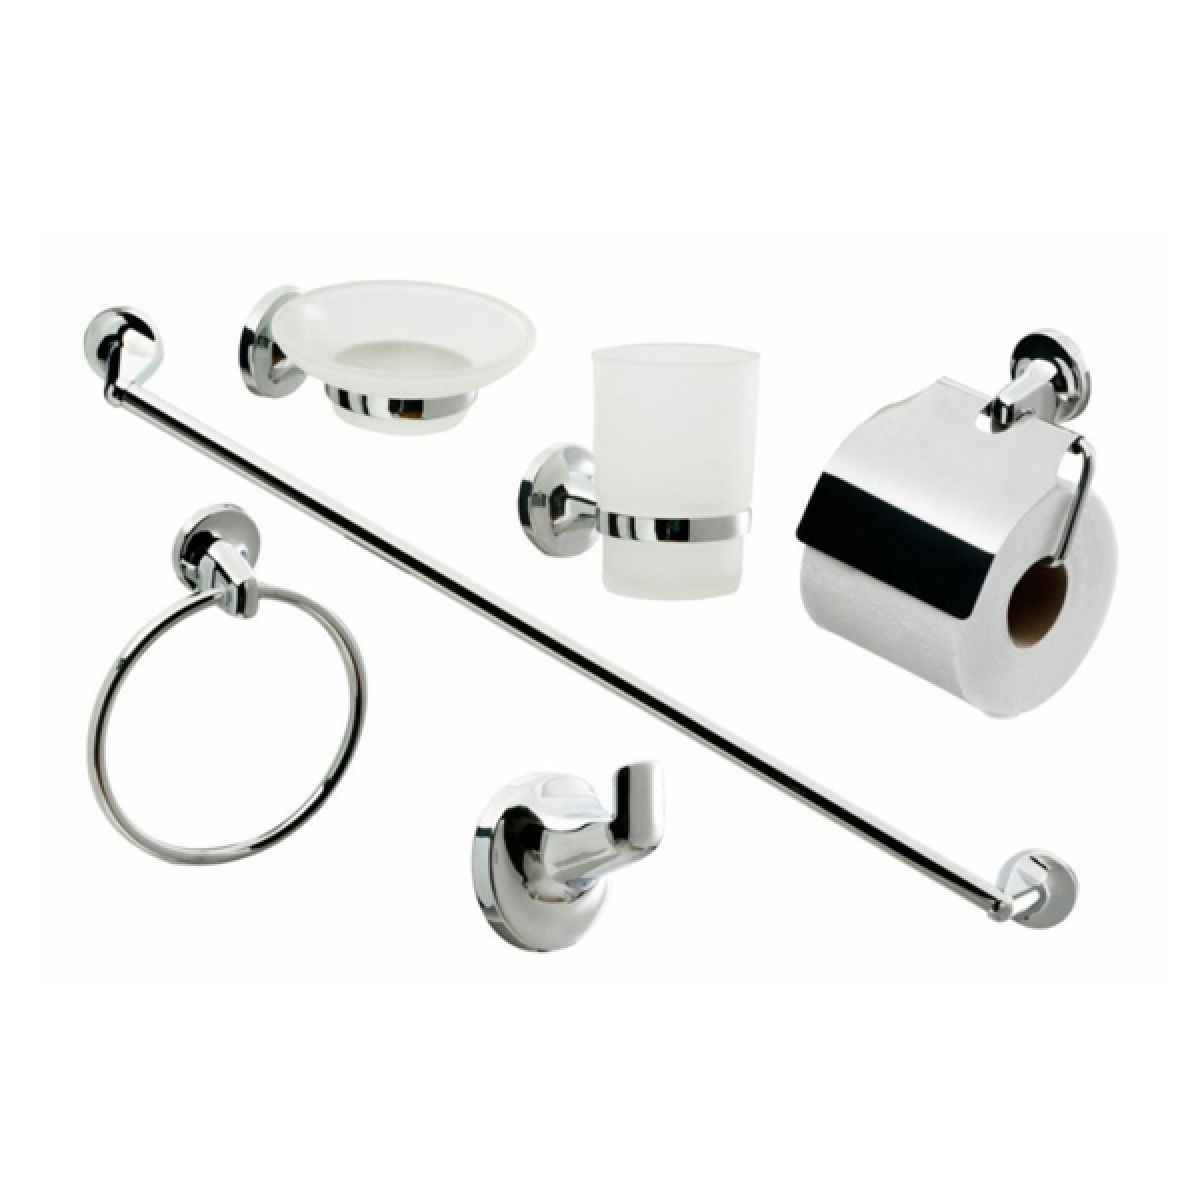 Modern Wall Mounted Square Toilet Roll Holder Chrome UK Bathroom Accessory